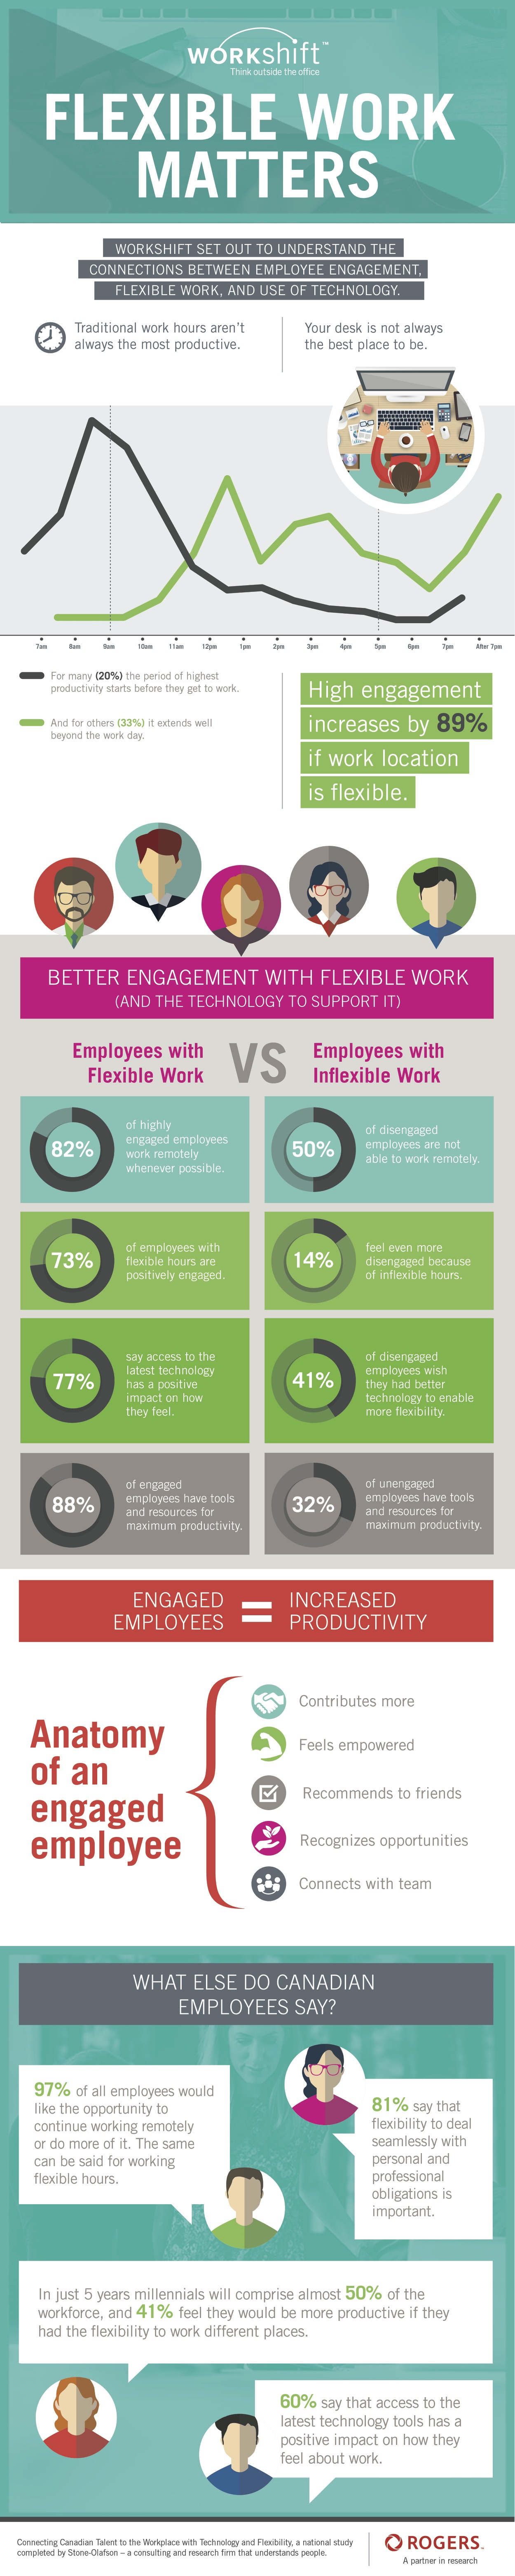 Workshift infographic